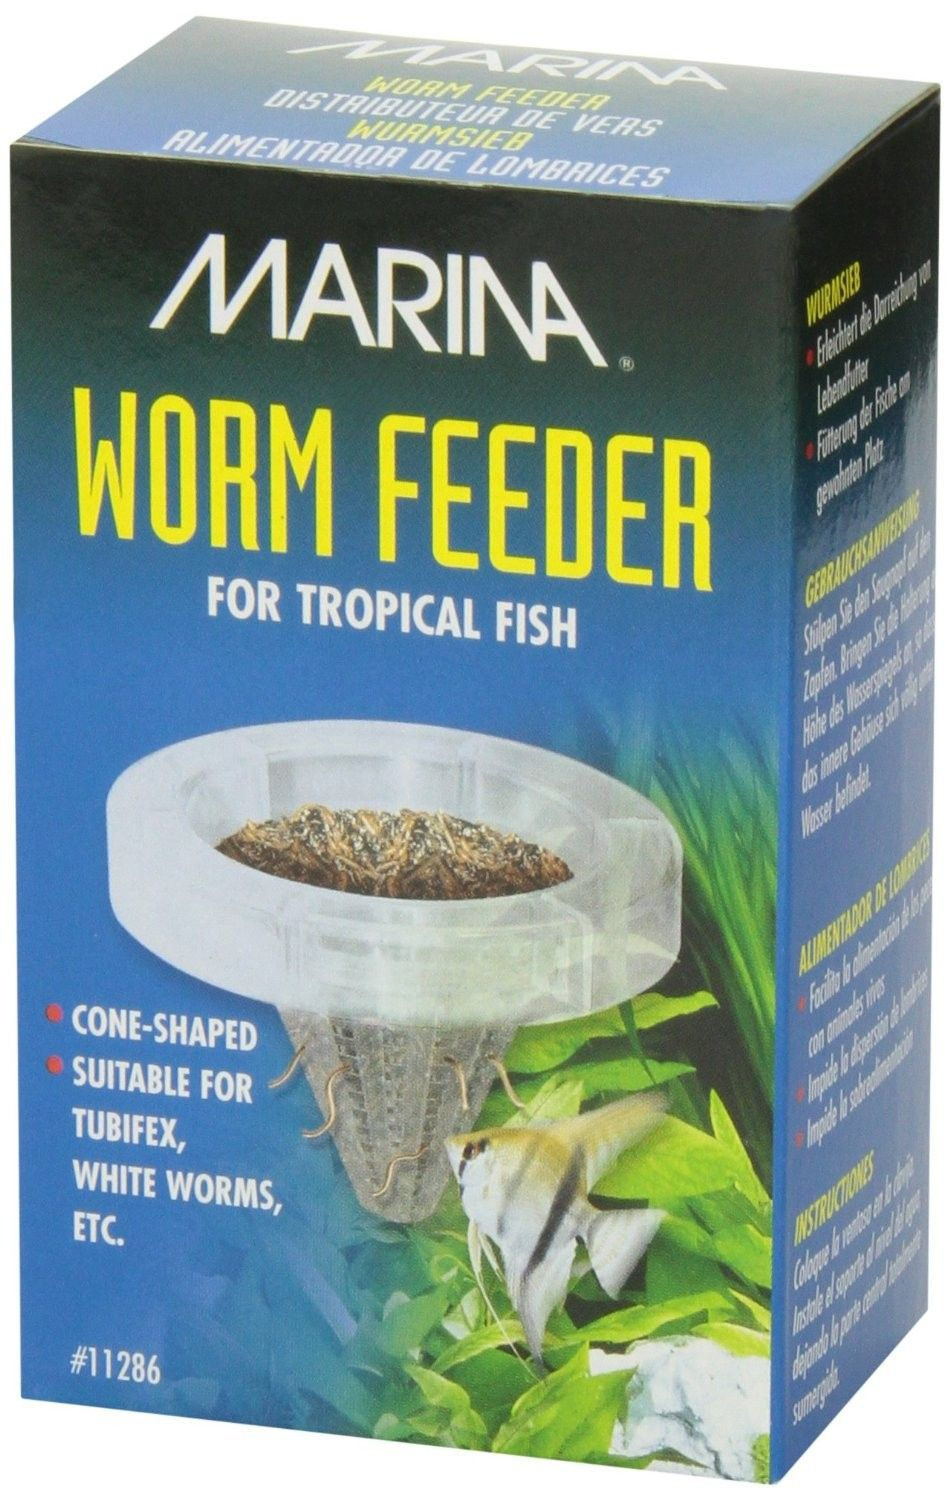 Worm feeder - Drøbak  - Marina Worm Feeder makes feeding live food and worms to tropical fish easy and convenient. The feeder consists of a cone-shaped feeding basket with a suction cup that securely attaches to the aquarium glass. The basket prevents live food, such  - Drøbak